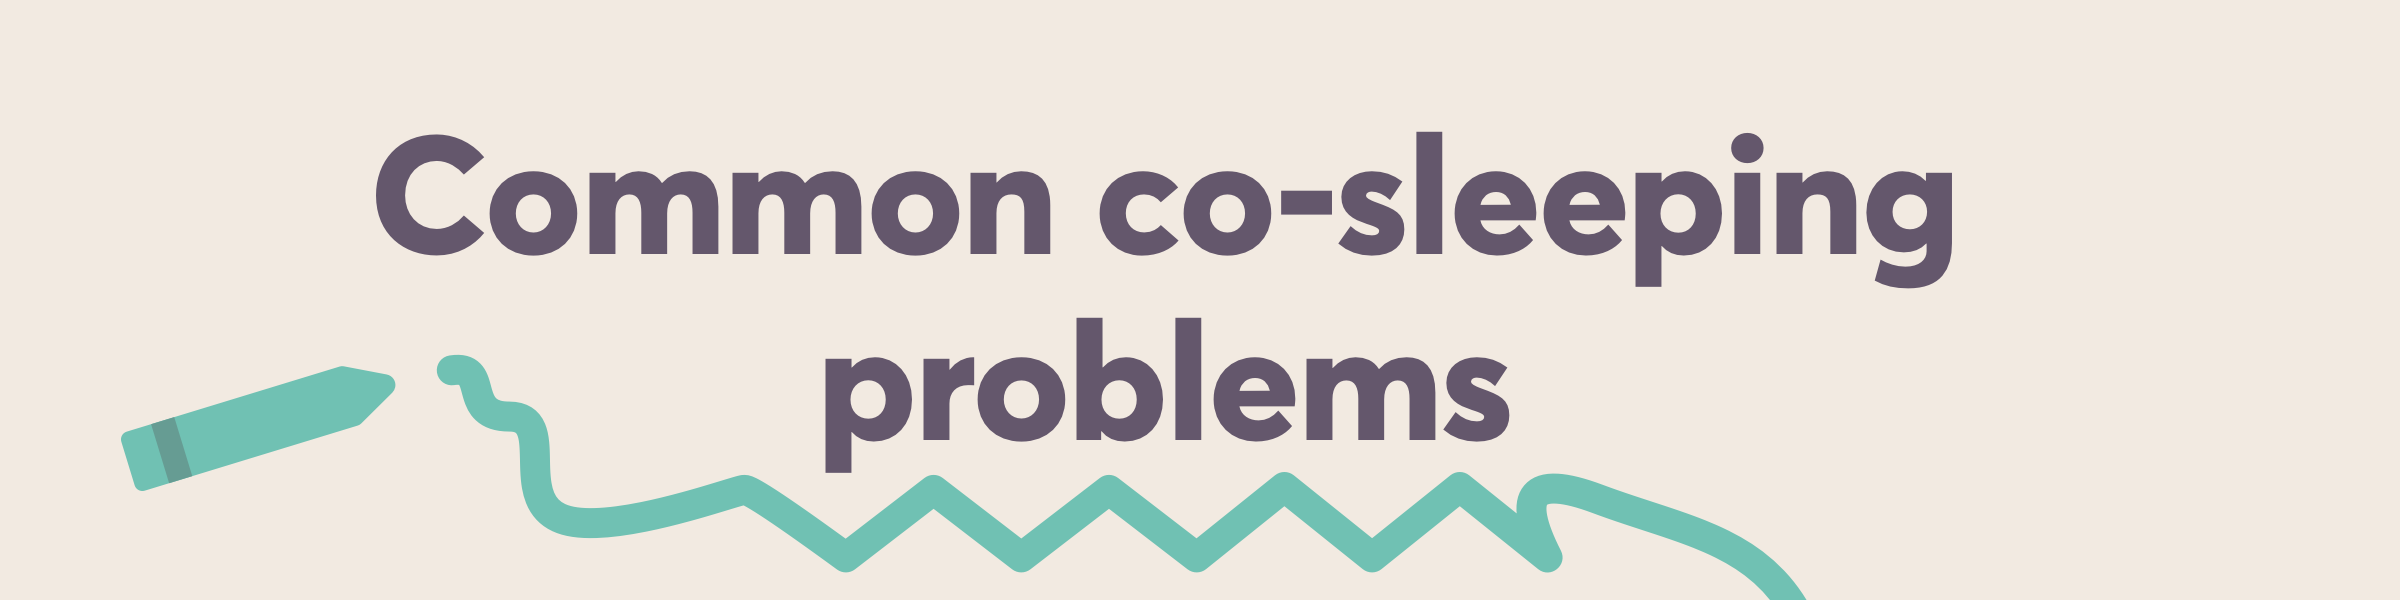 sleep and relationships: common co-sleeping problems